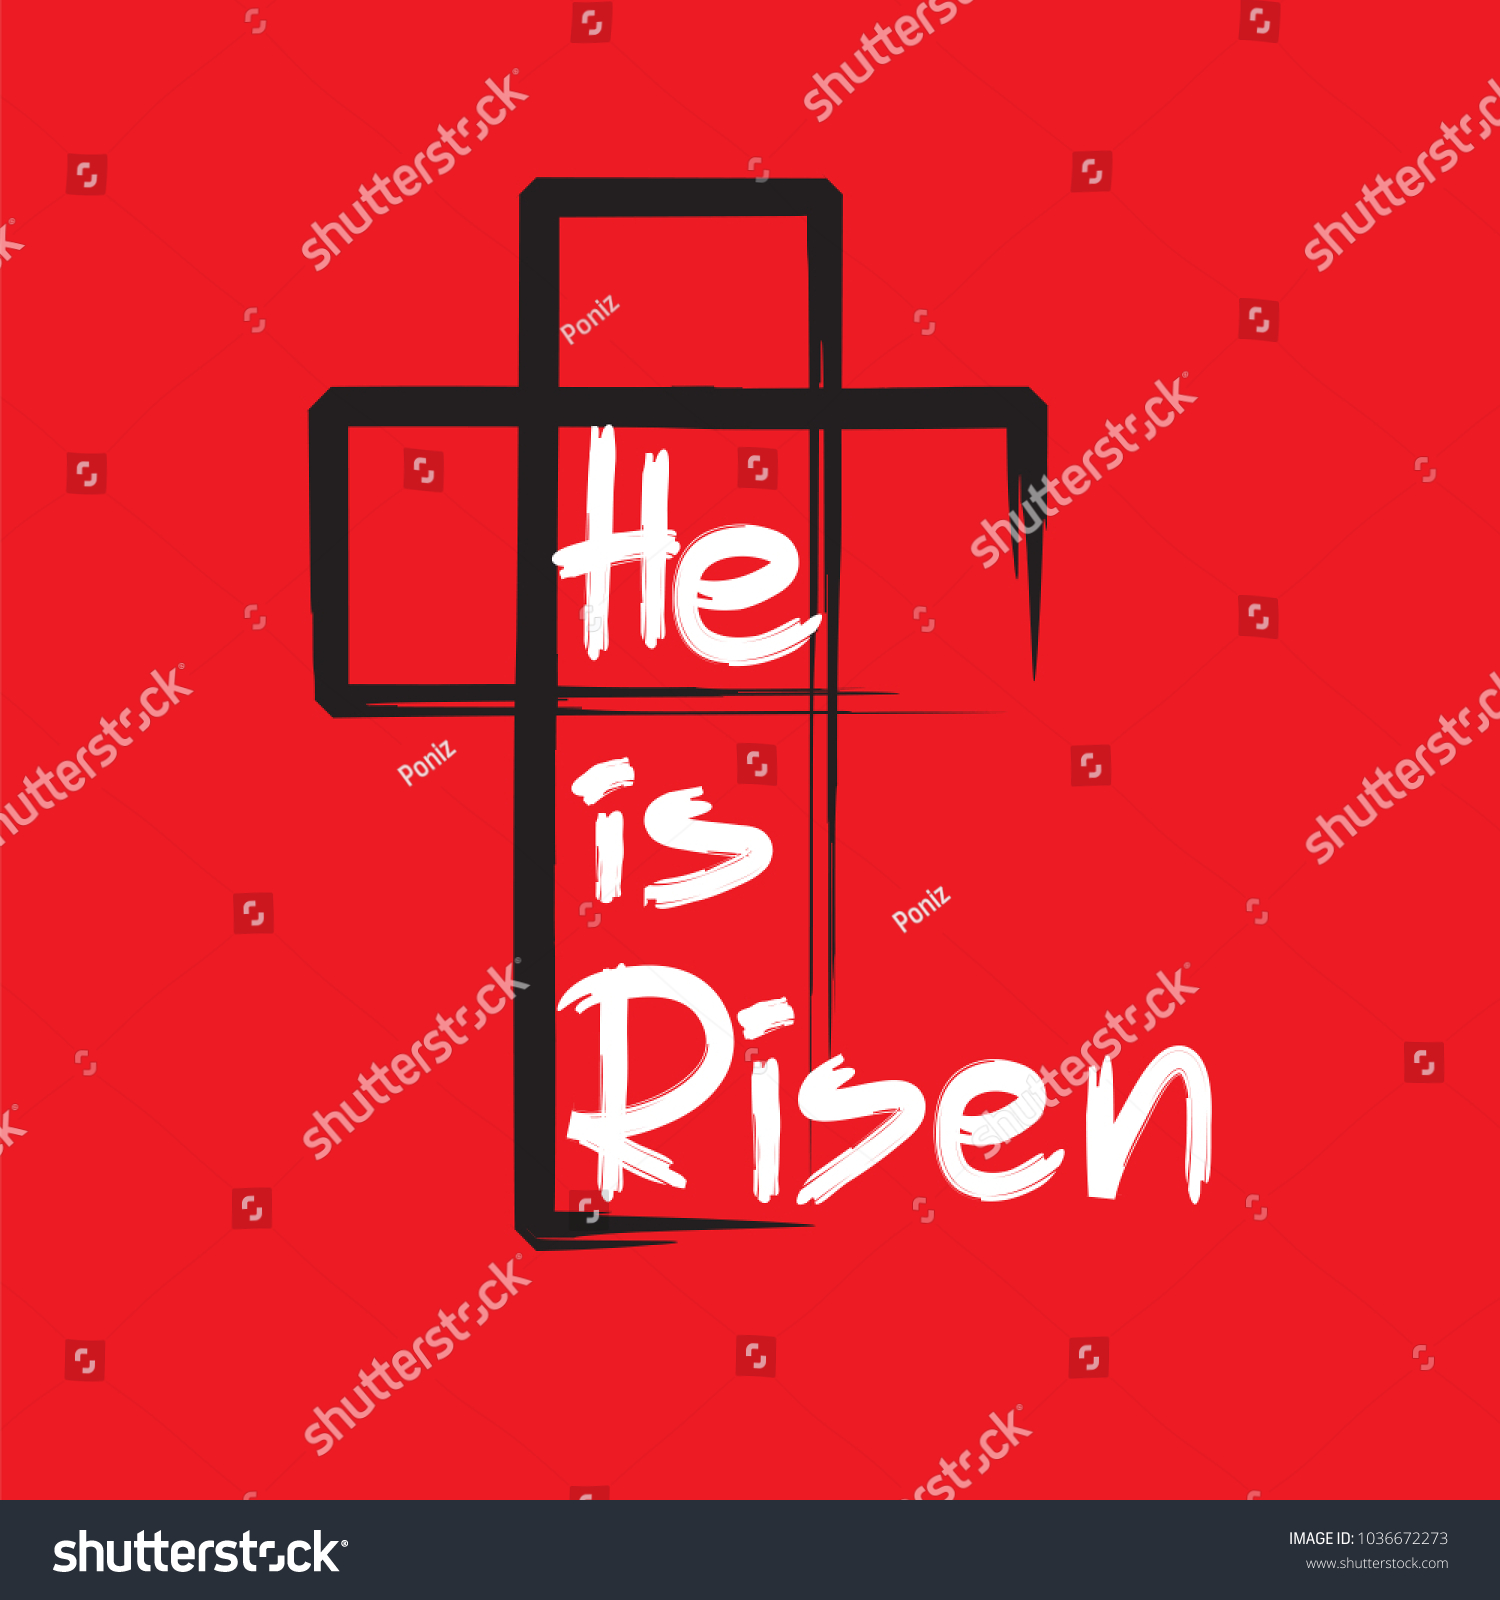 He risen motivational quote lettering religious stock vector he is risen motivational quote lettering religious poster print for poster prayer kristyandbryce Images